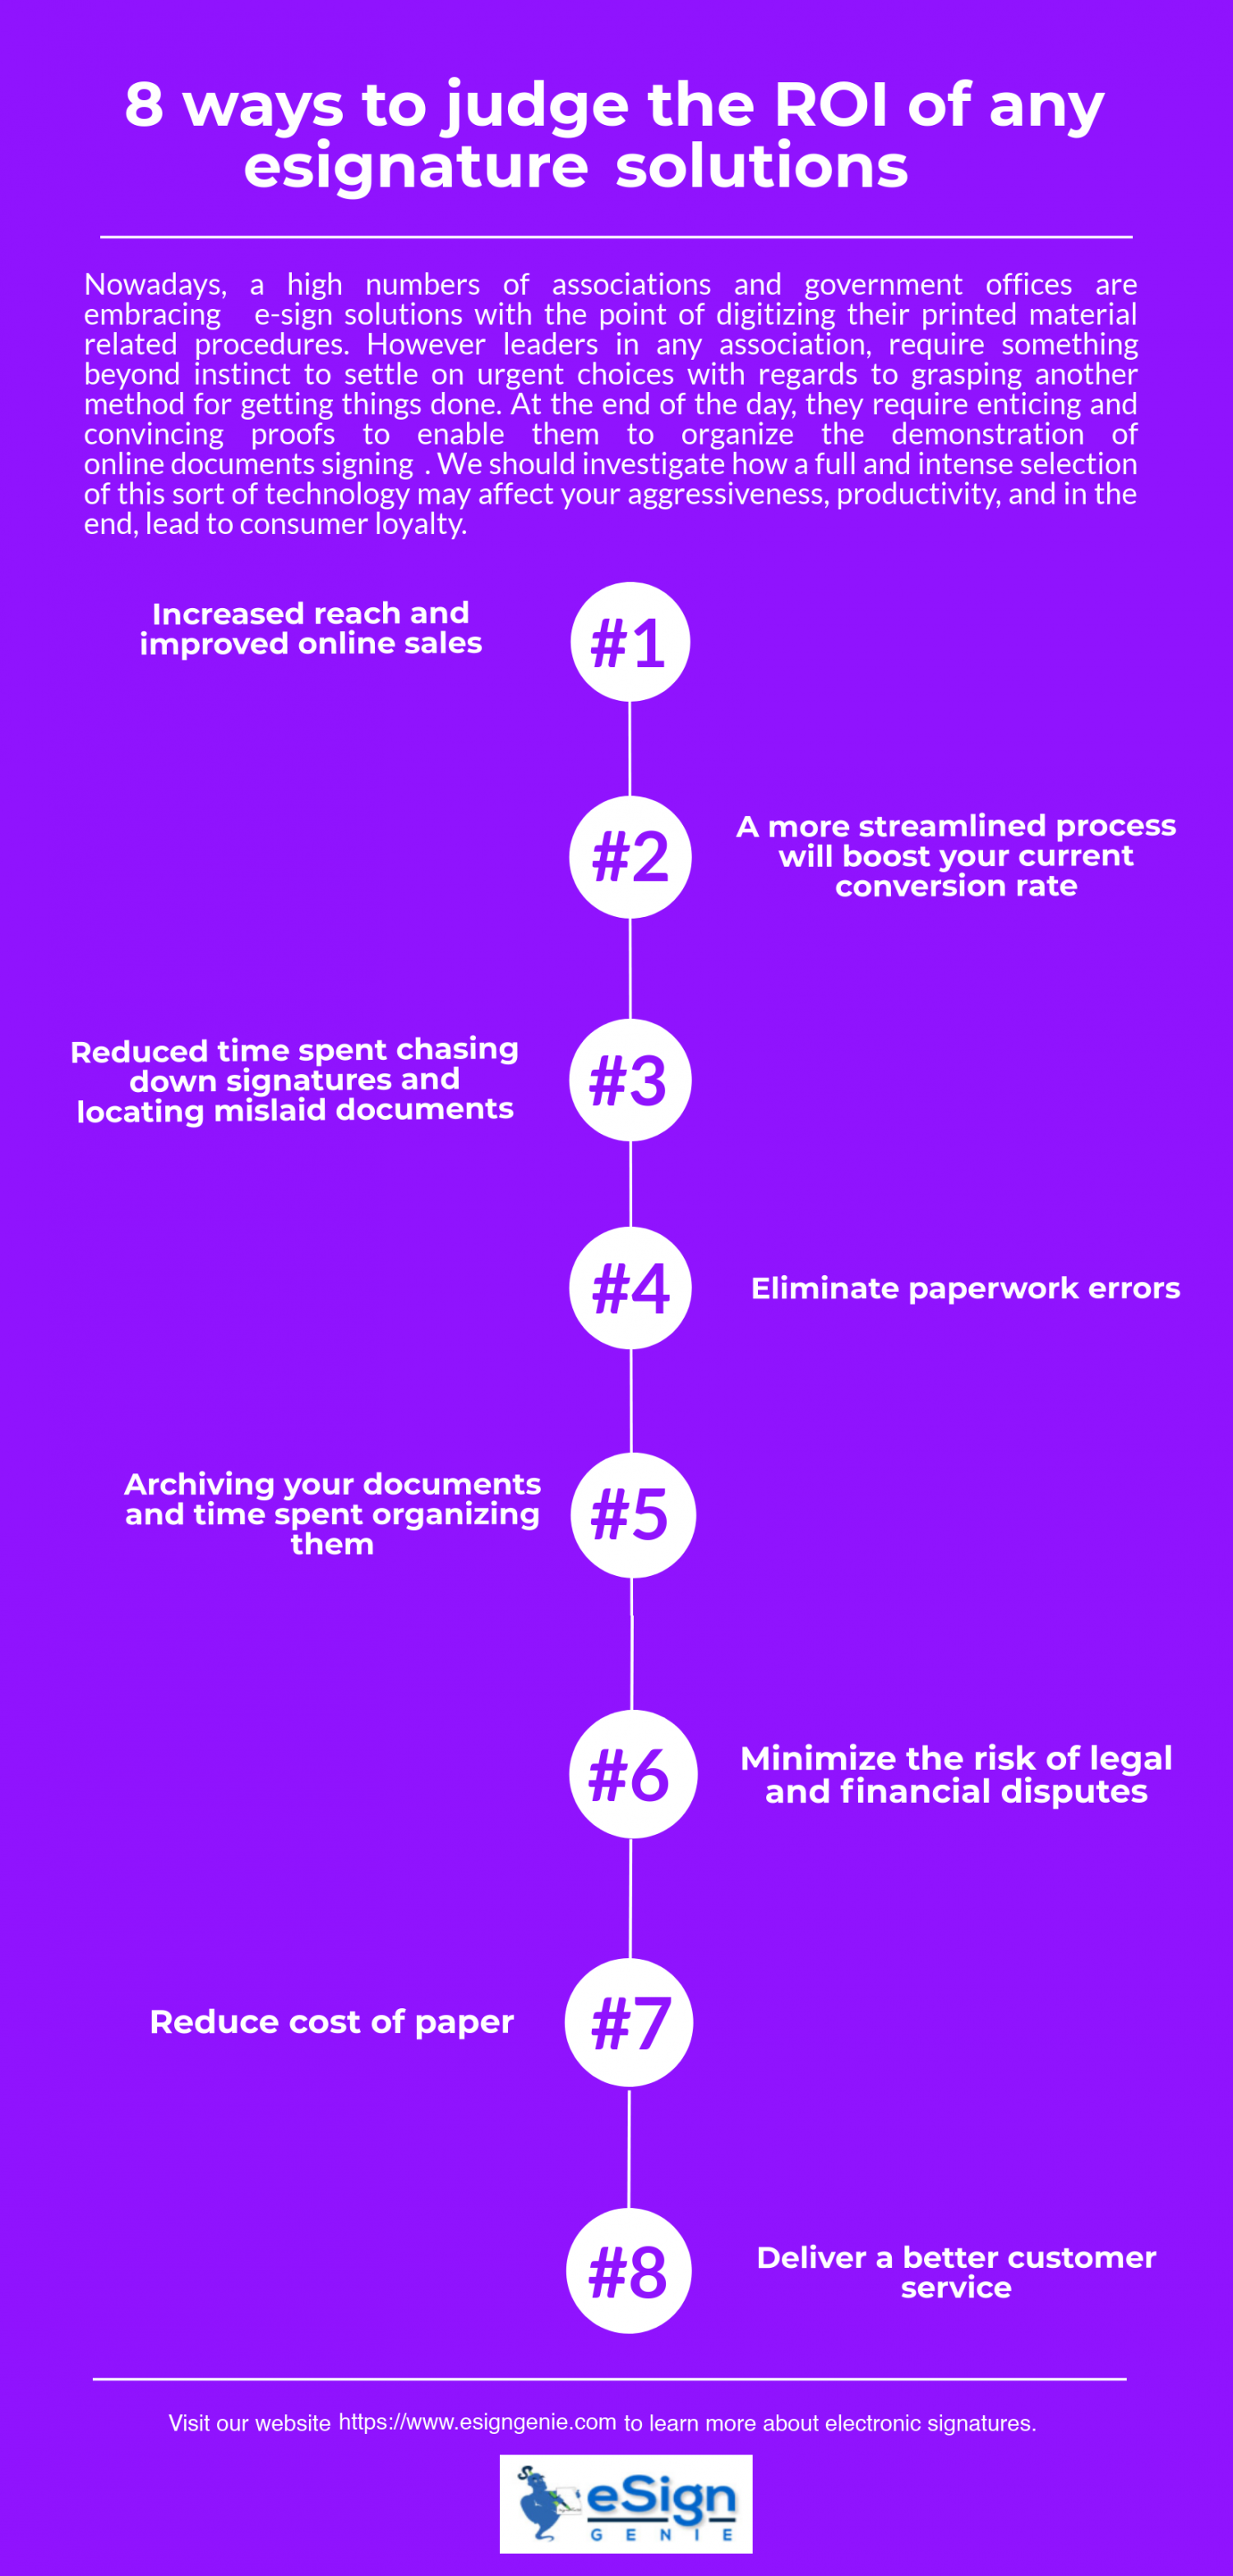 8 tips to derive ROI from any esignature solution Infographic